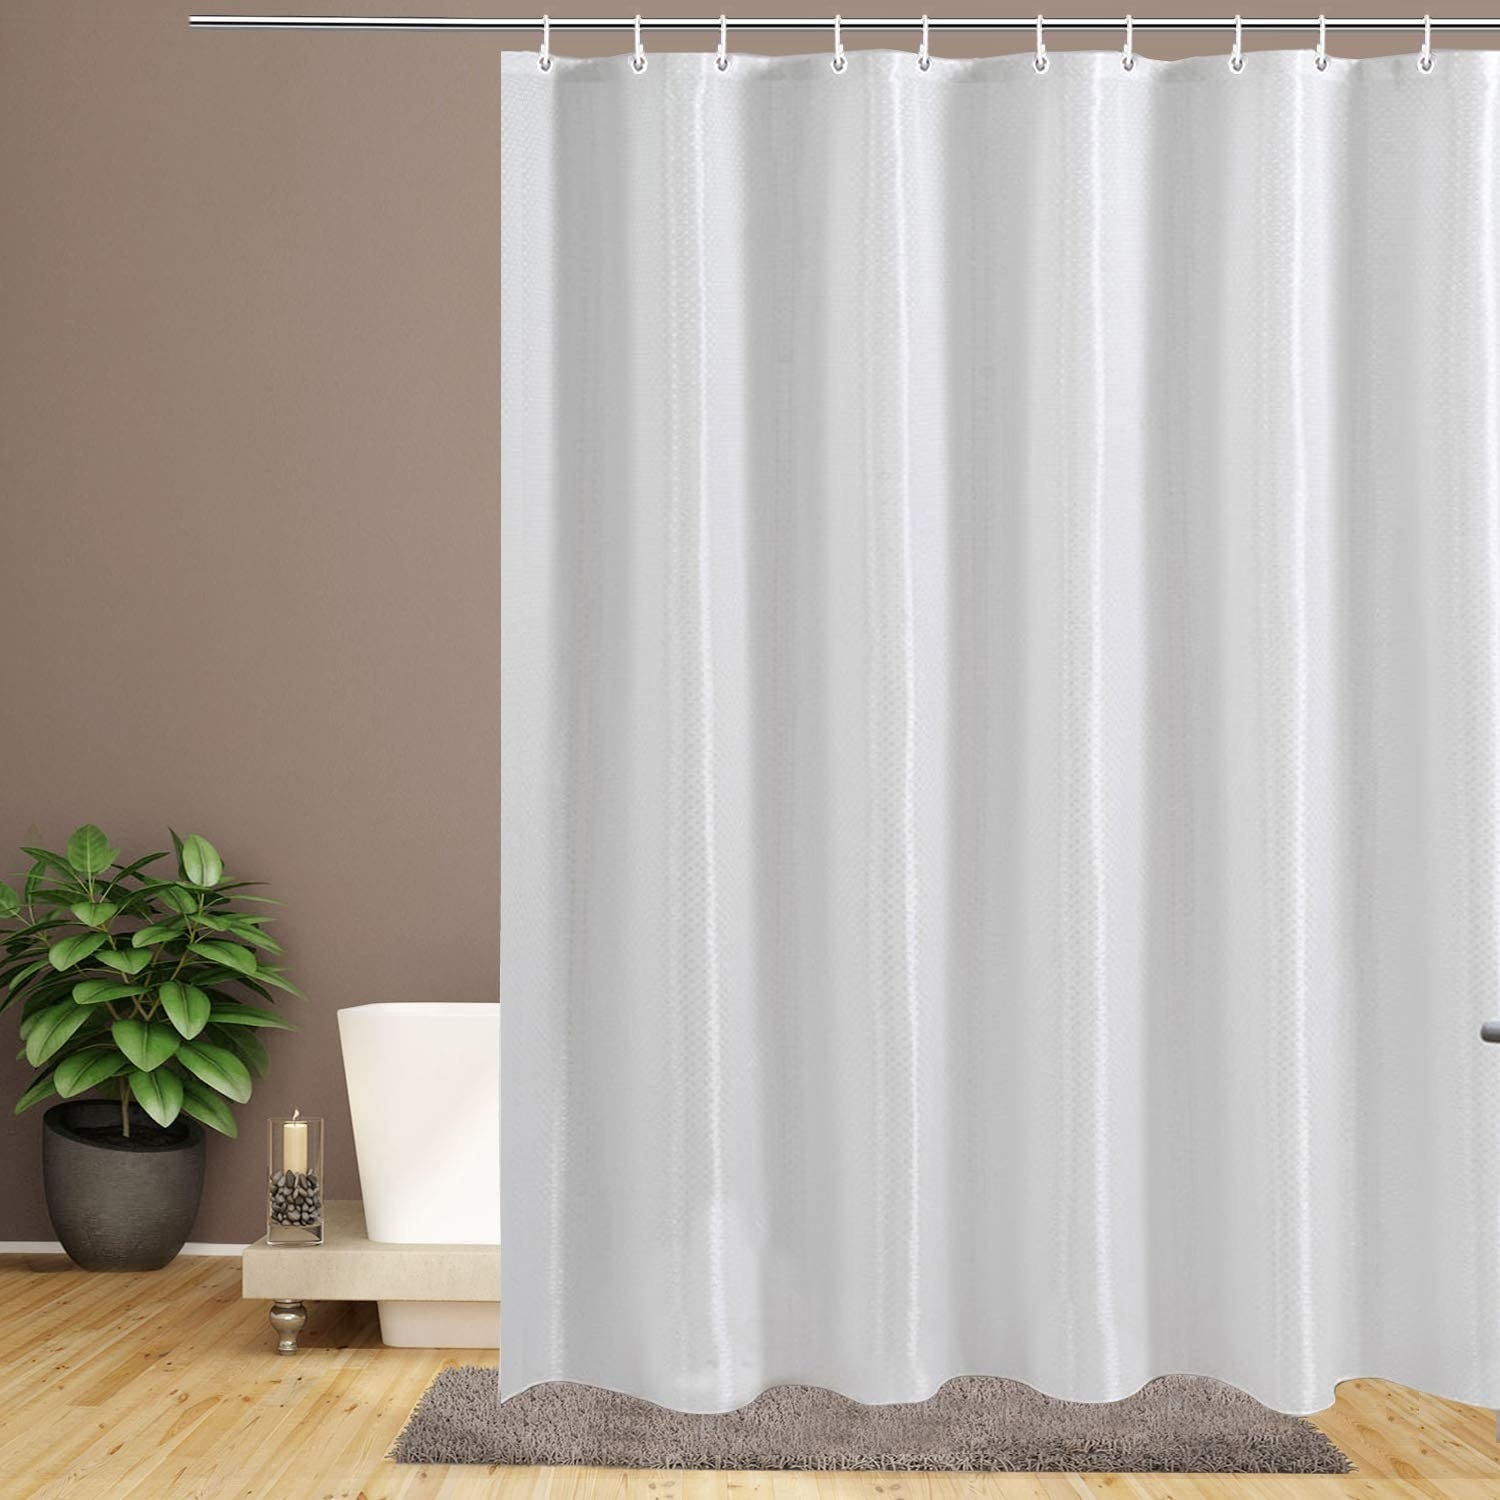 A plain shower curtain hanging in a bathroom